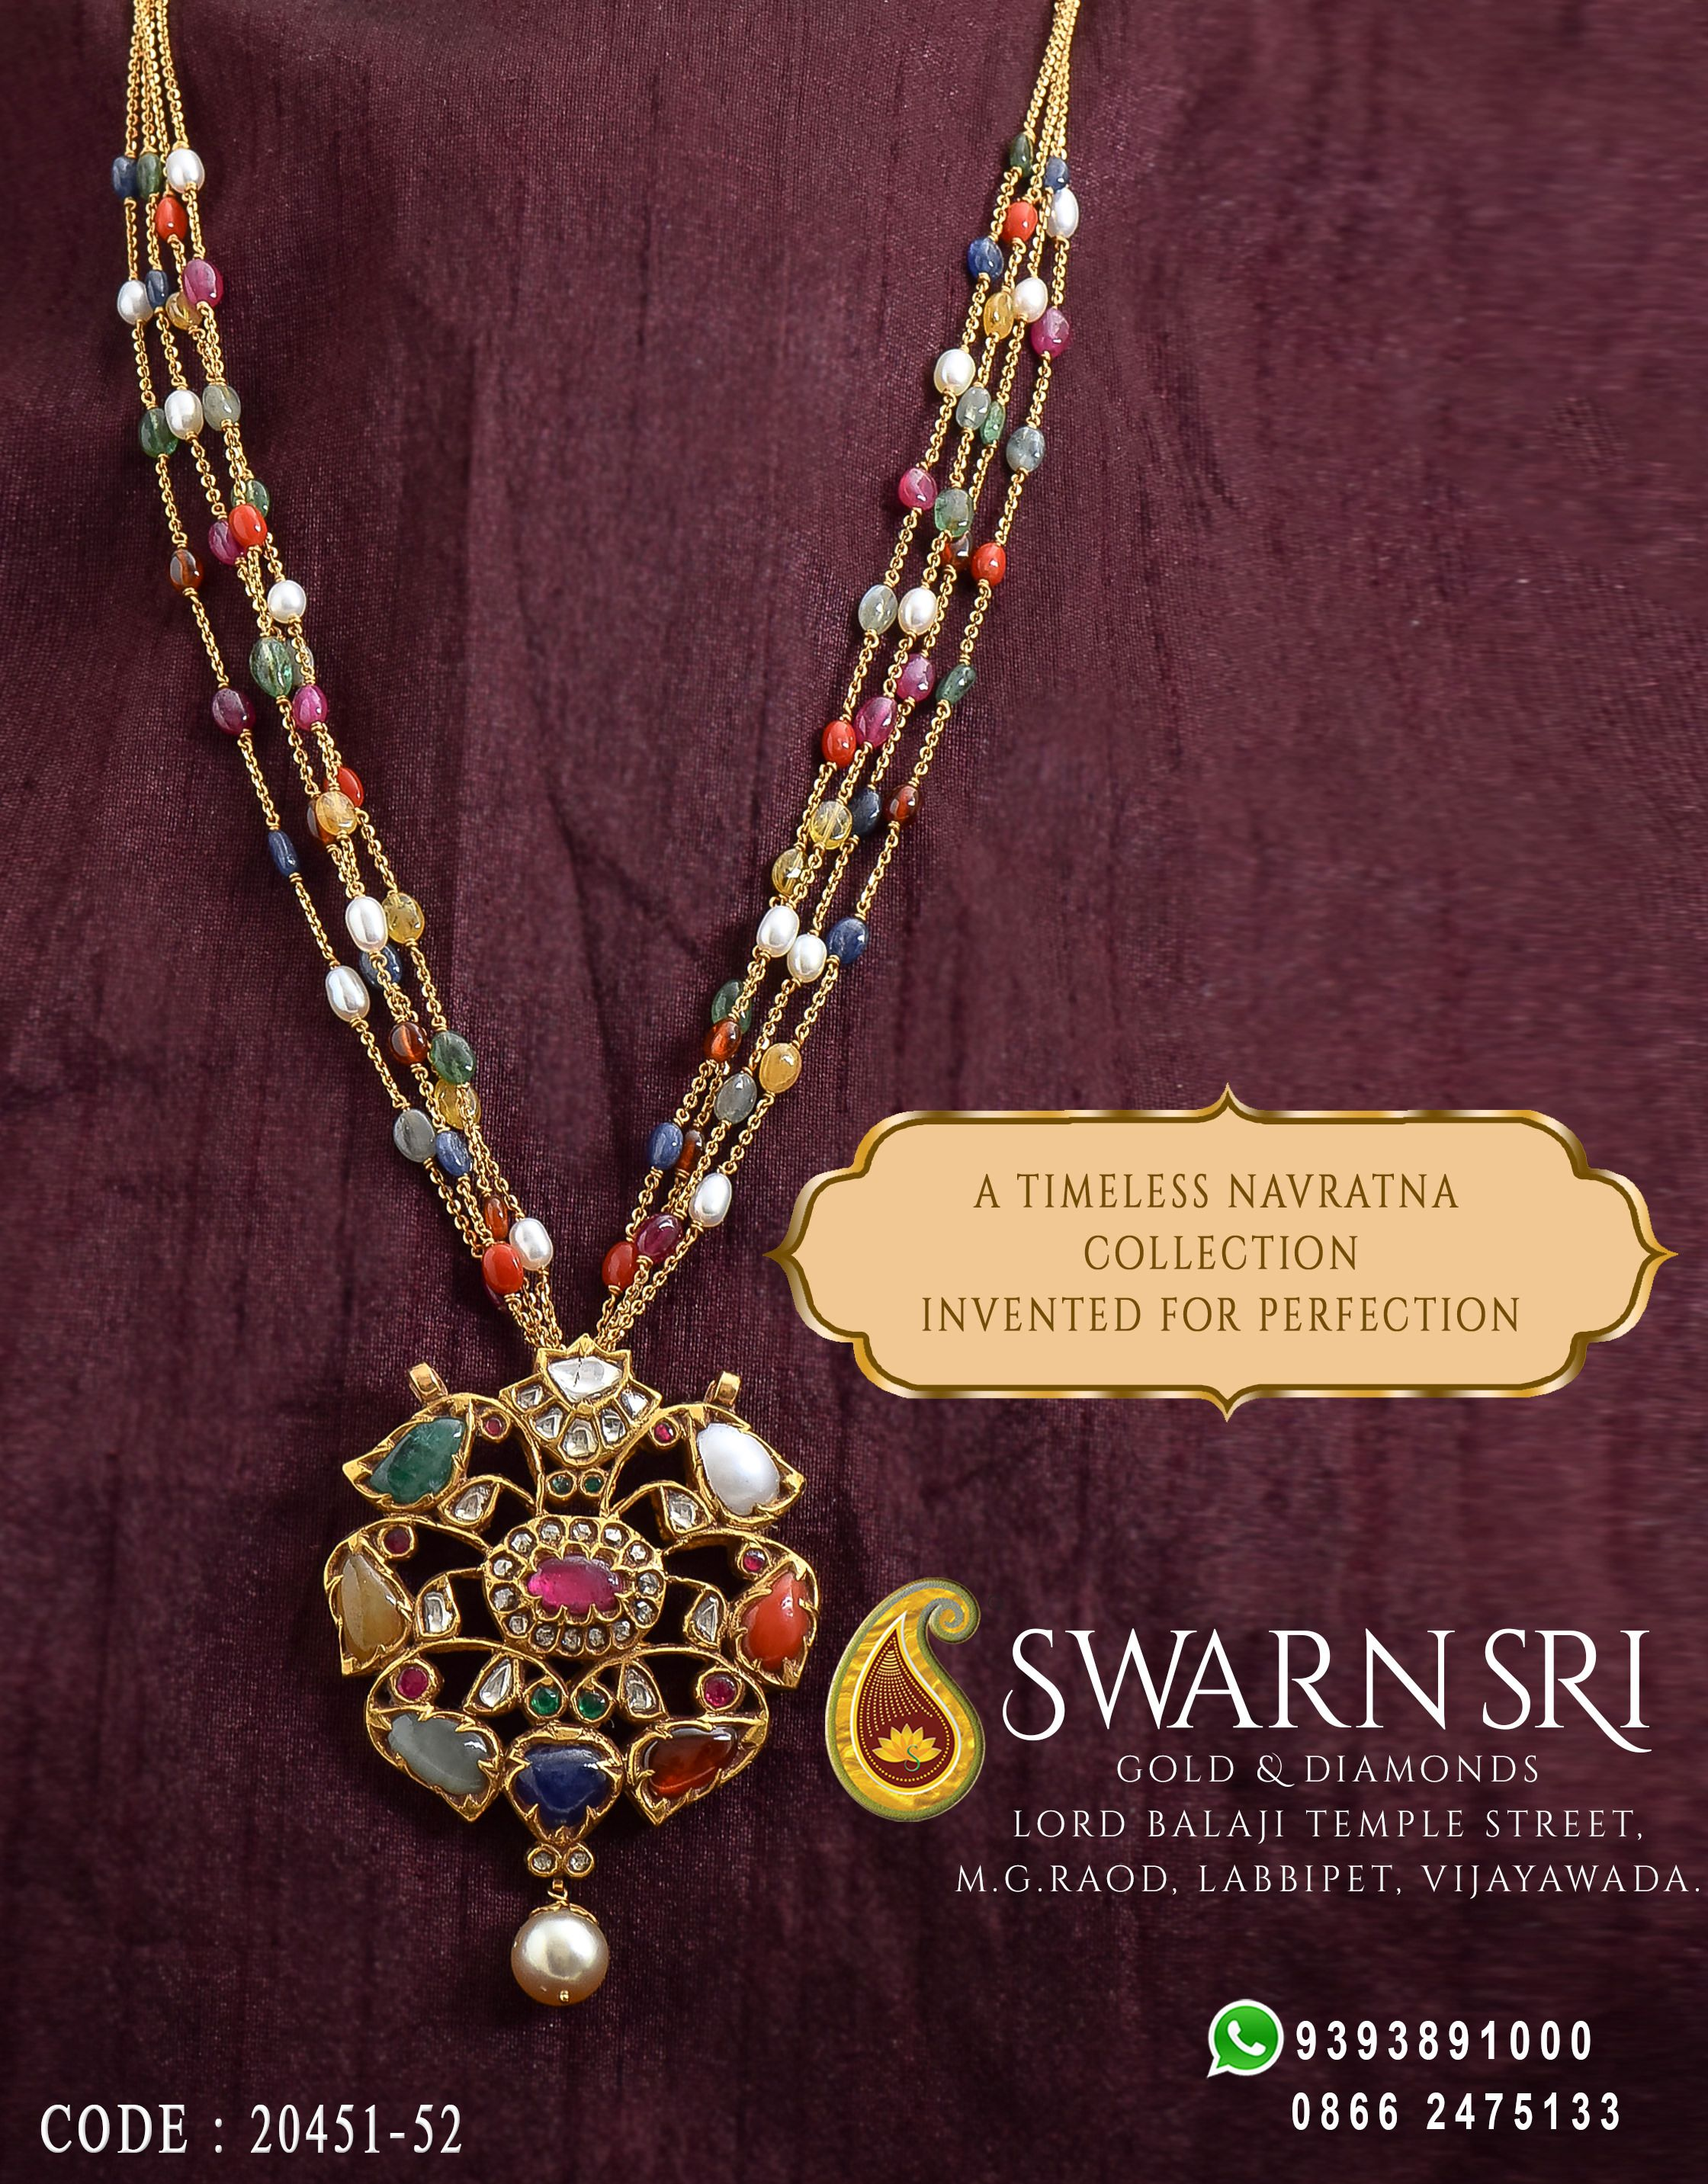 The timeless collections of navratna chains and pendants available